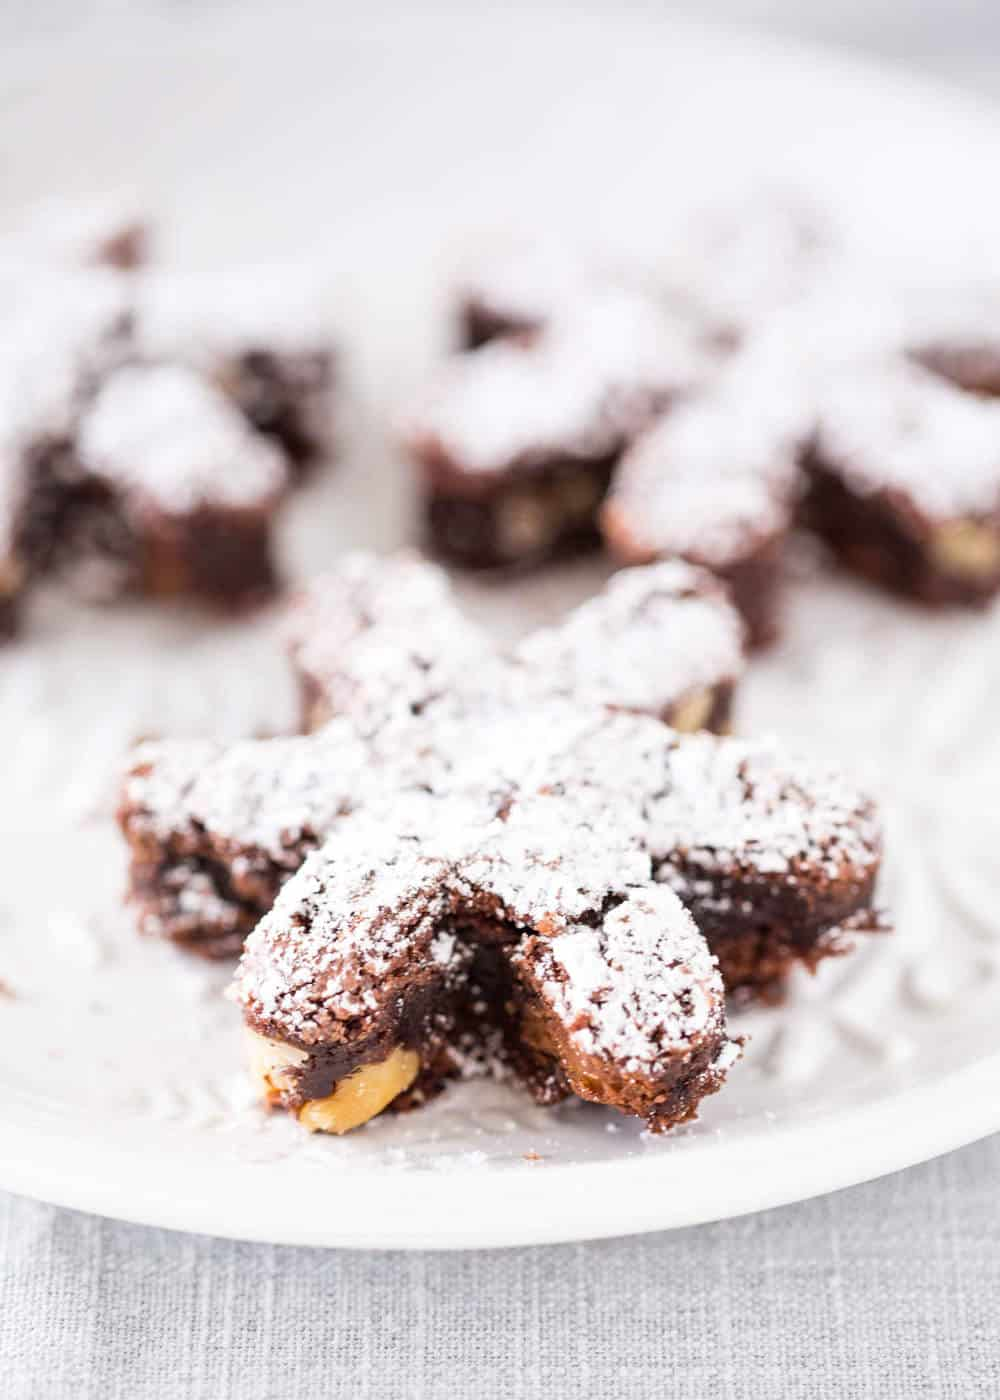 ROLO Snowflake Brownies - chewy, fudgey brownies filled with chocolate, caramel, and nuts! The perfect holiday dessert!